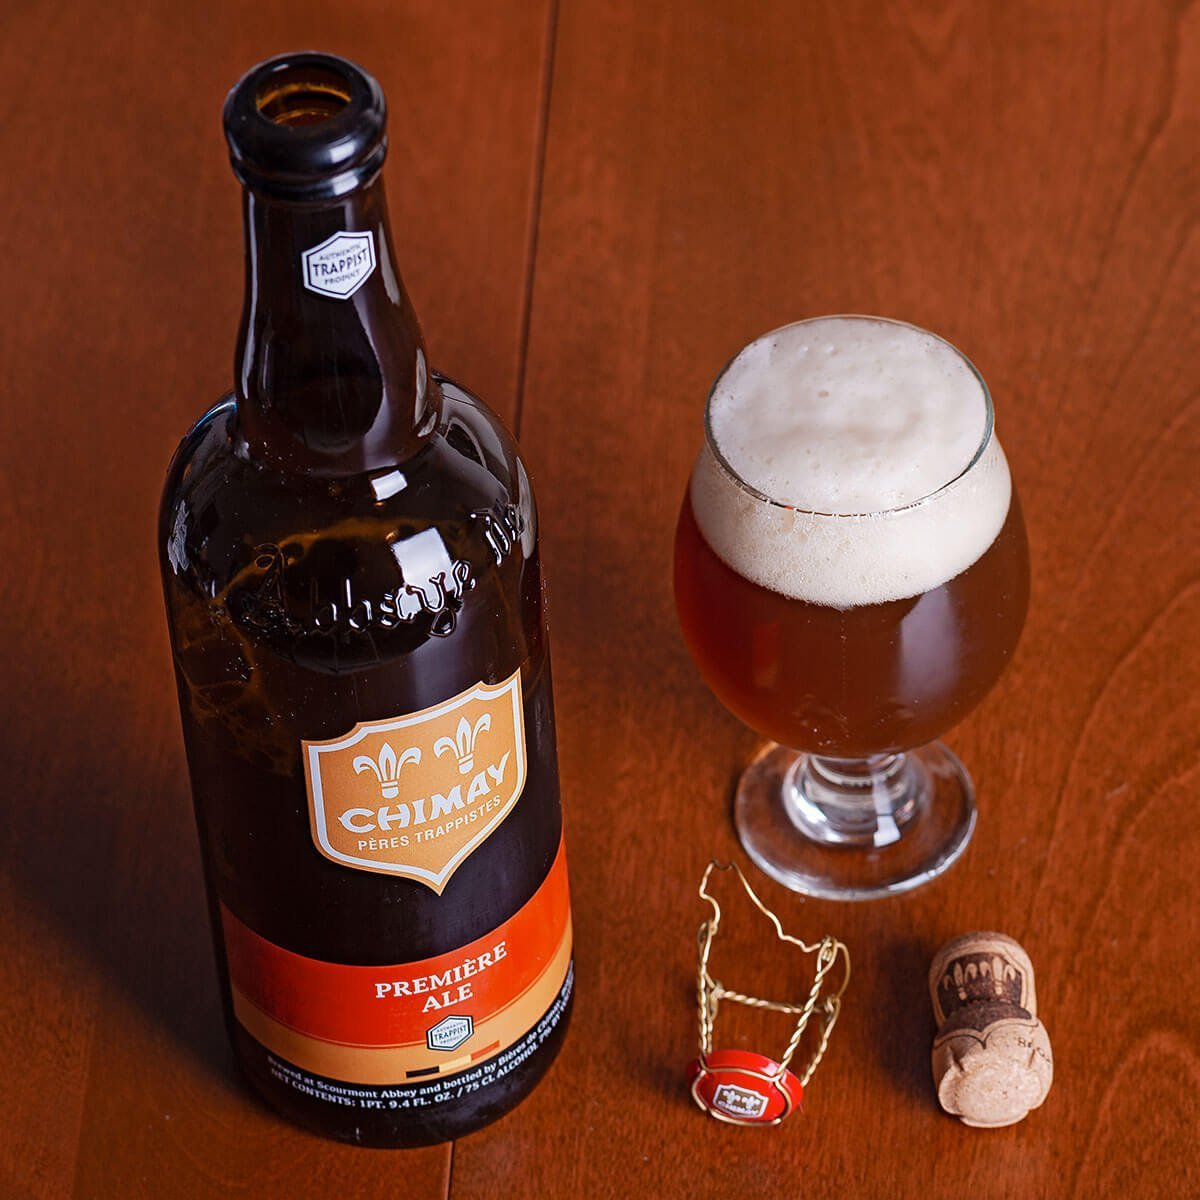 Chimay Première Red Ale is a Belgian Dubbel brewed by Bières de Chimay that balances subtle floral hops, pepper and clove spices along with stone and dark fruits.